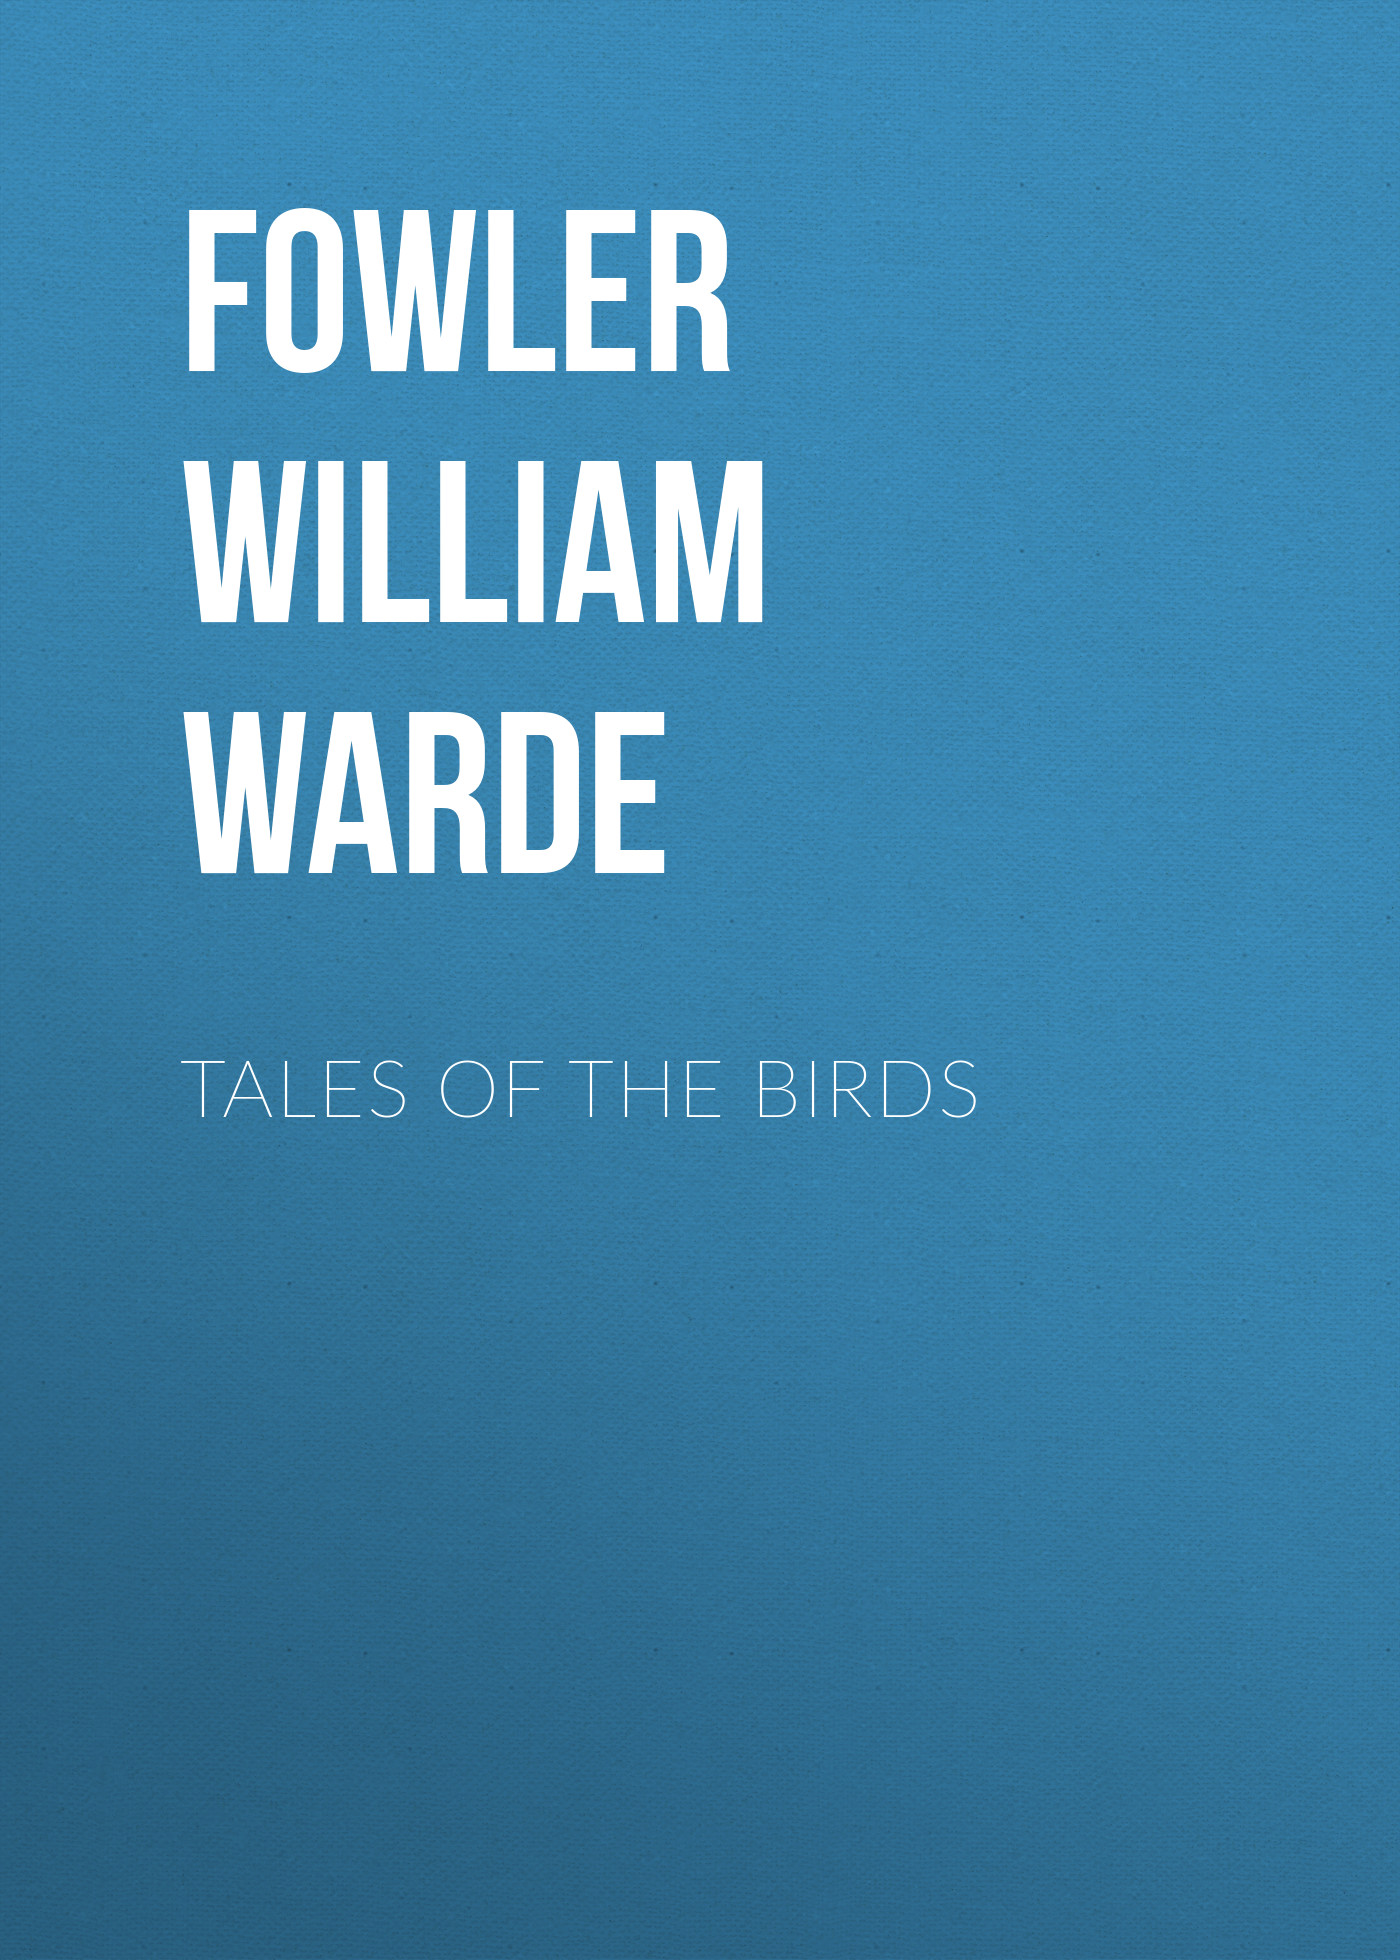 Fowler William Warde Tales of the birds adam fowler nosql for dummies